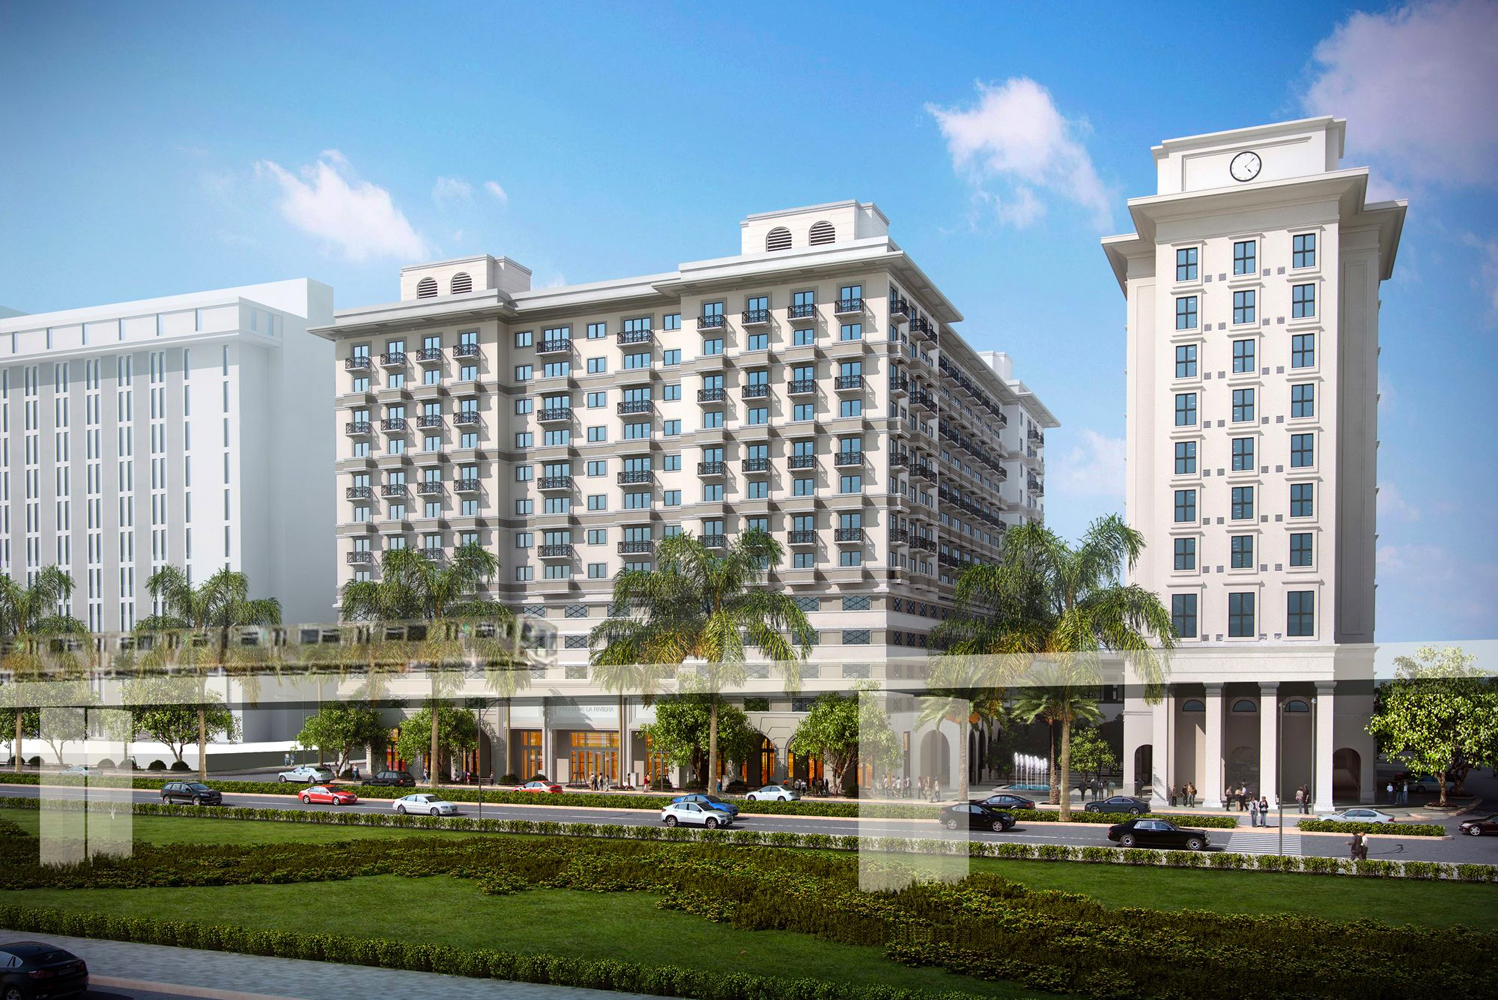 Involved in the development of THēsis Hotel Miami are Jorge Hernandez Architects, the lead architect; and Gensler, the architect of record and interior designer.